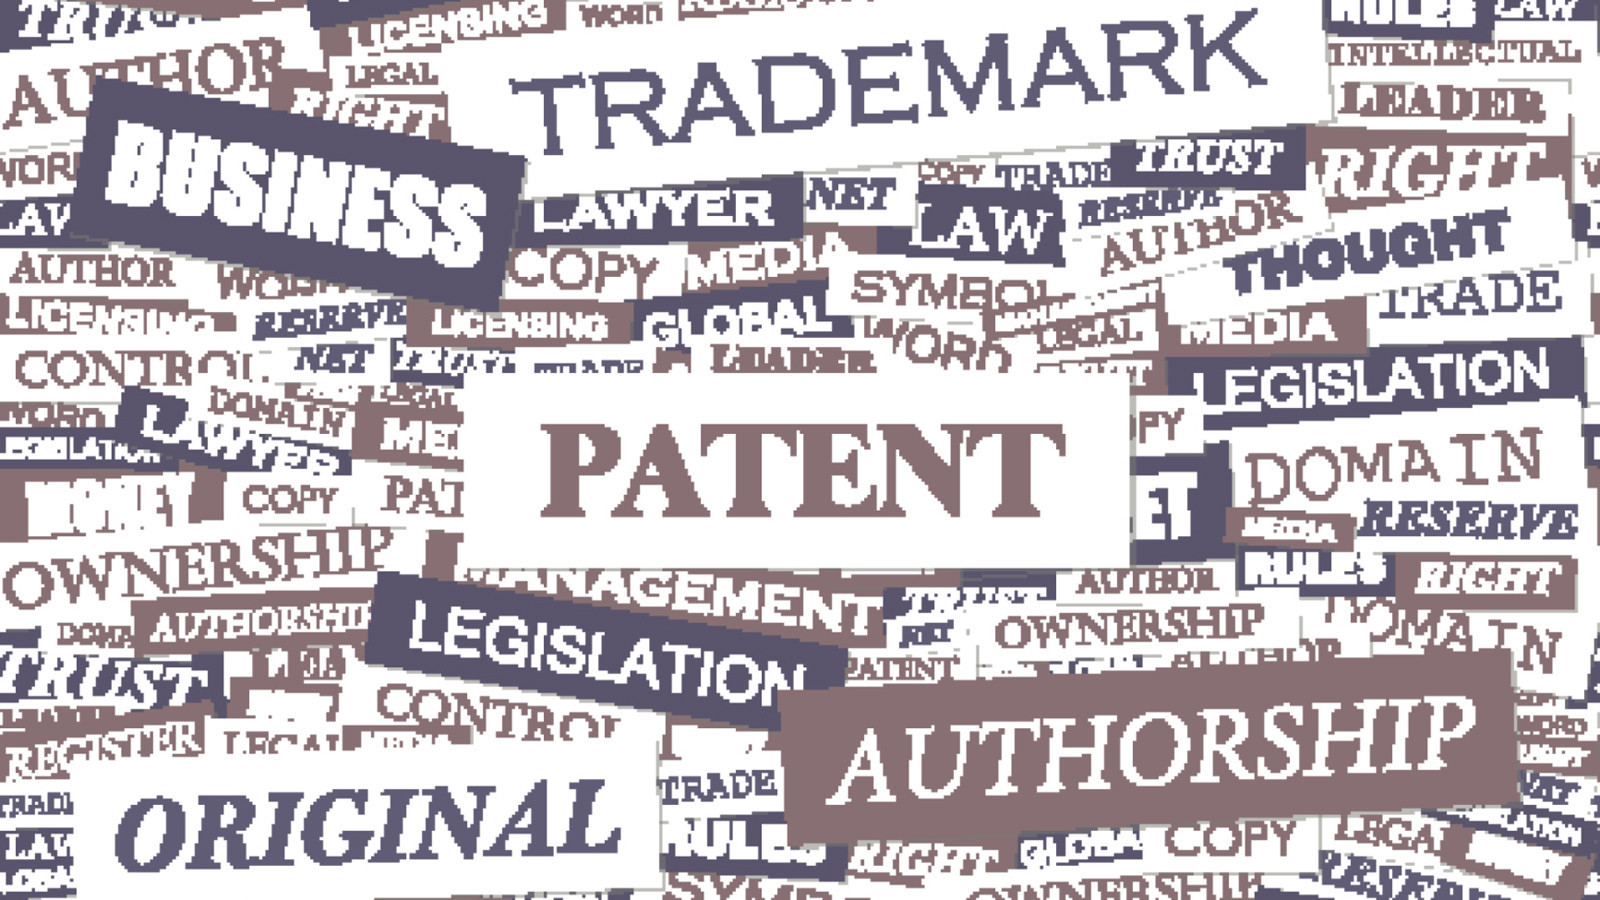 How to patent an idea How to get a patent for an idea in a business or industry 29